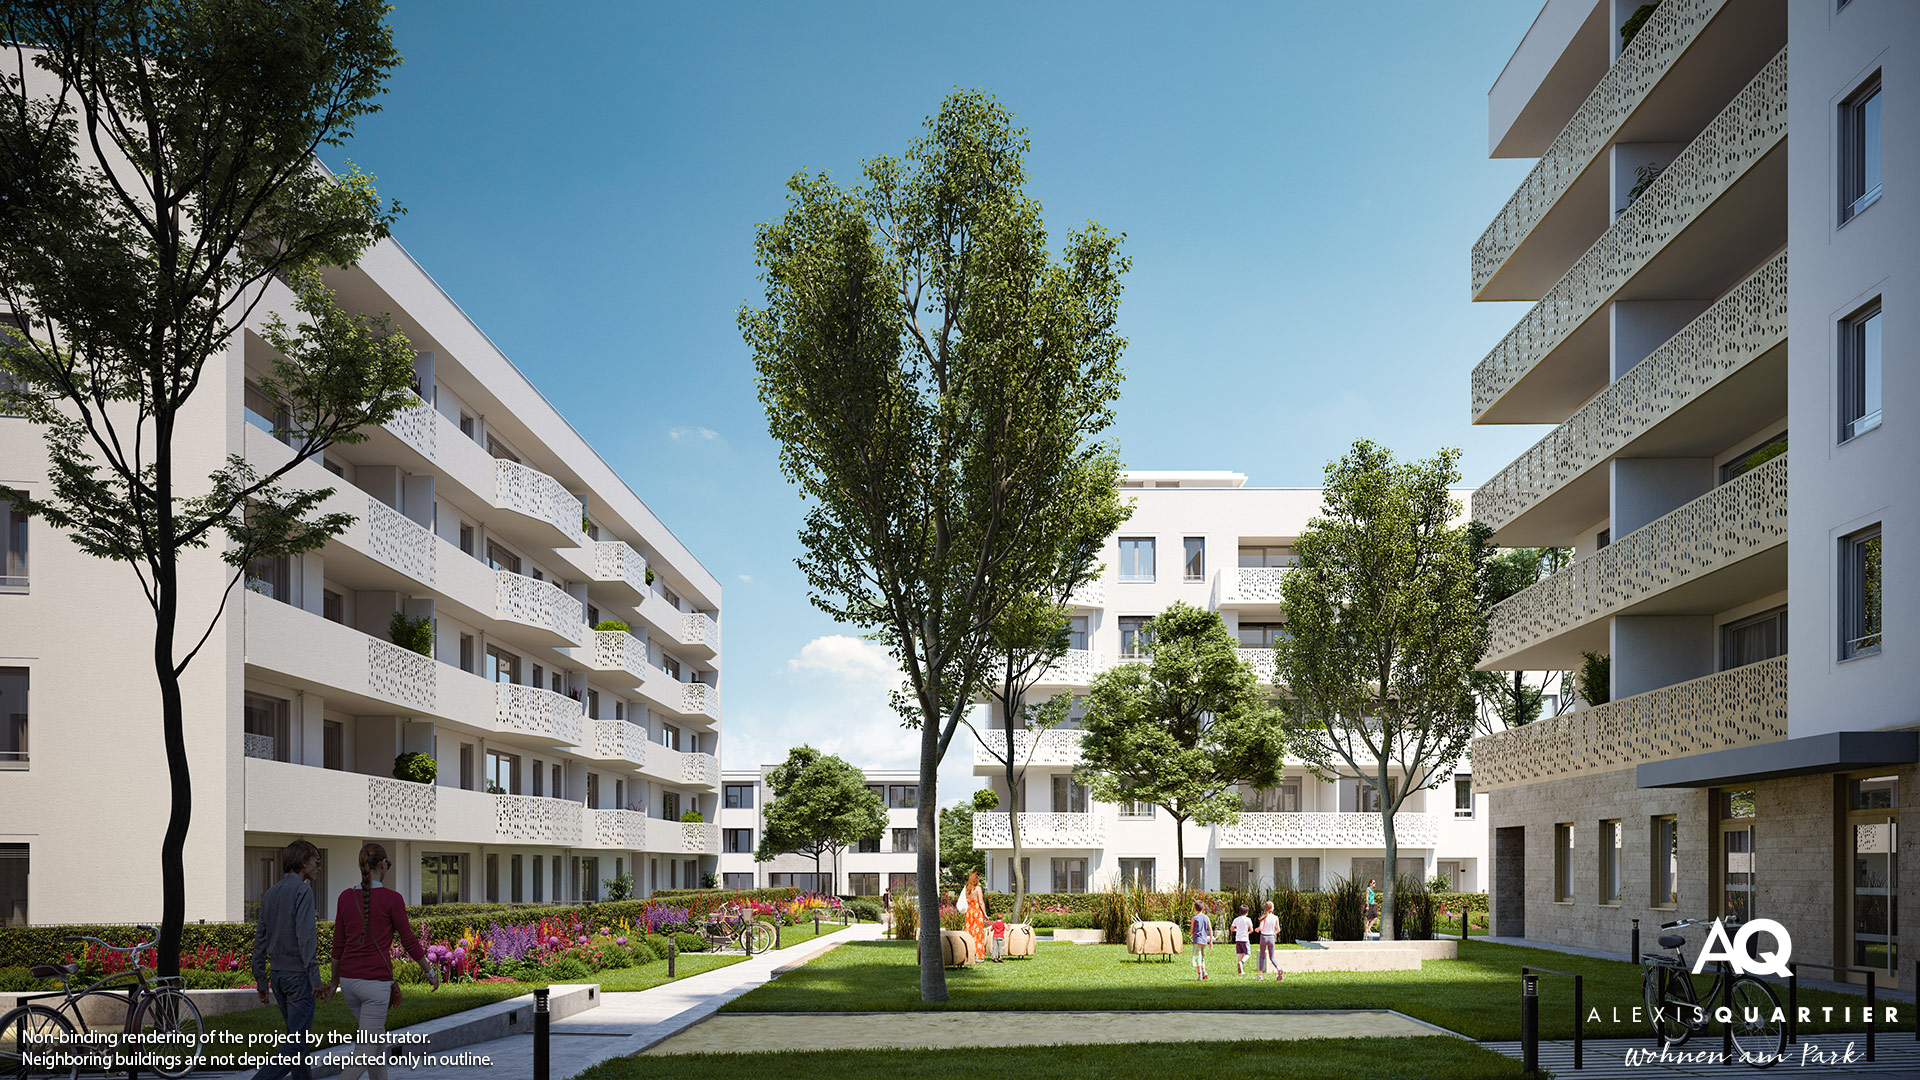 Property ALEXISQUARTIER - reference image